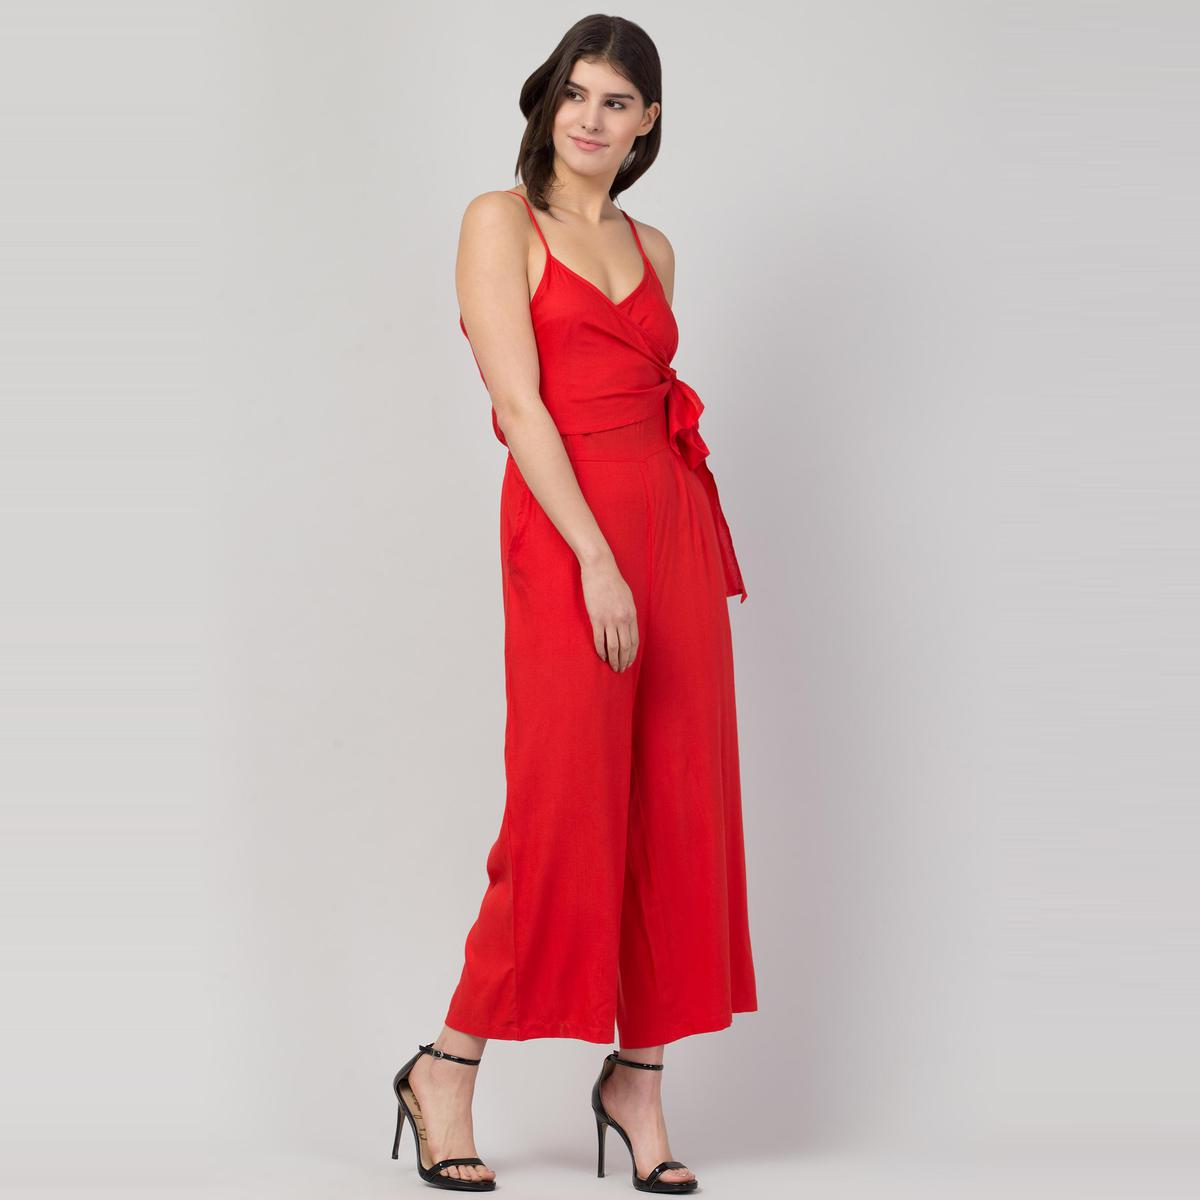 OMADAM - Red Colored Solid Crepe Jumpsuit